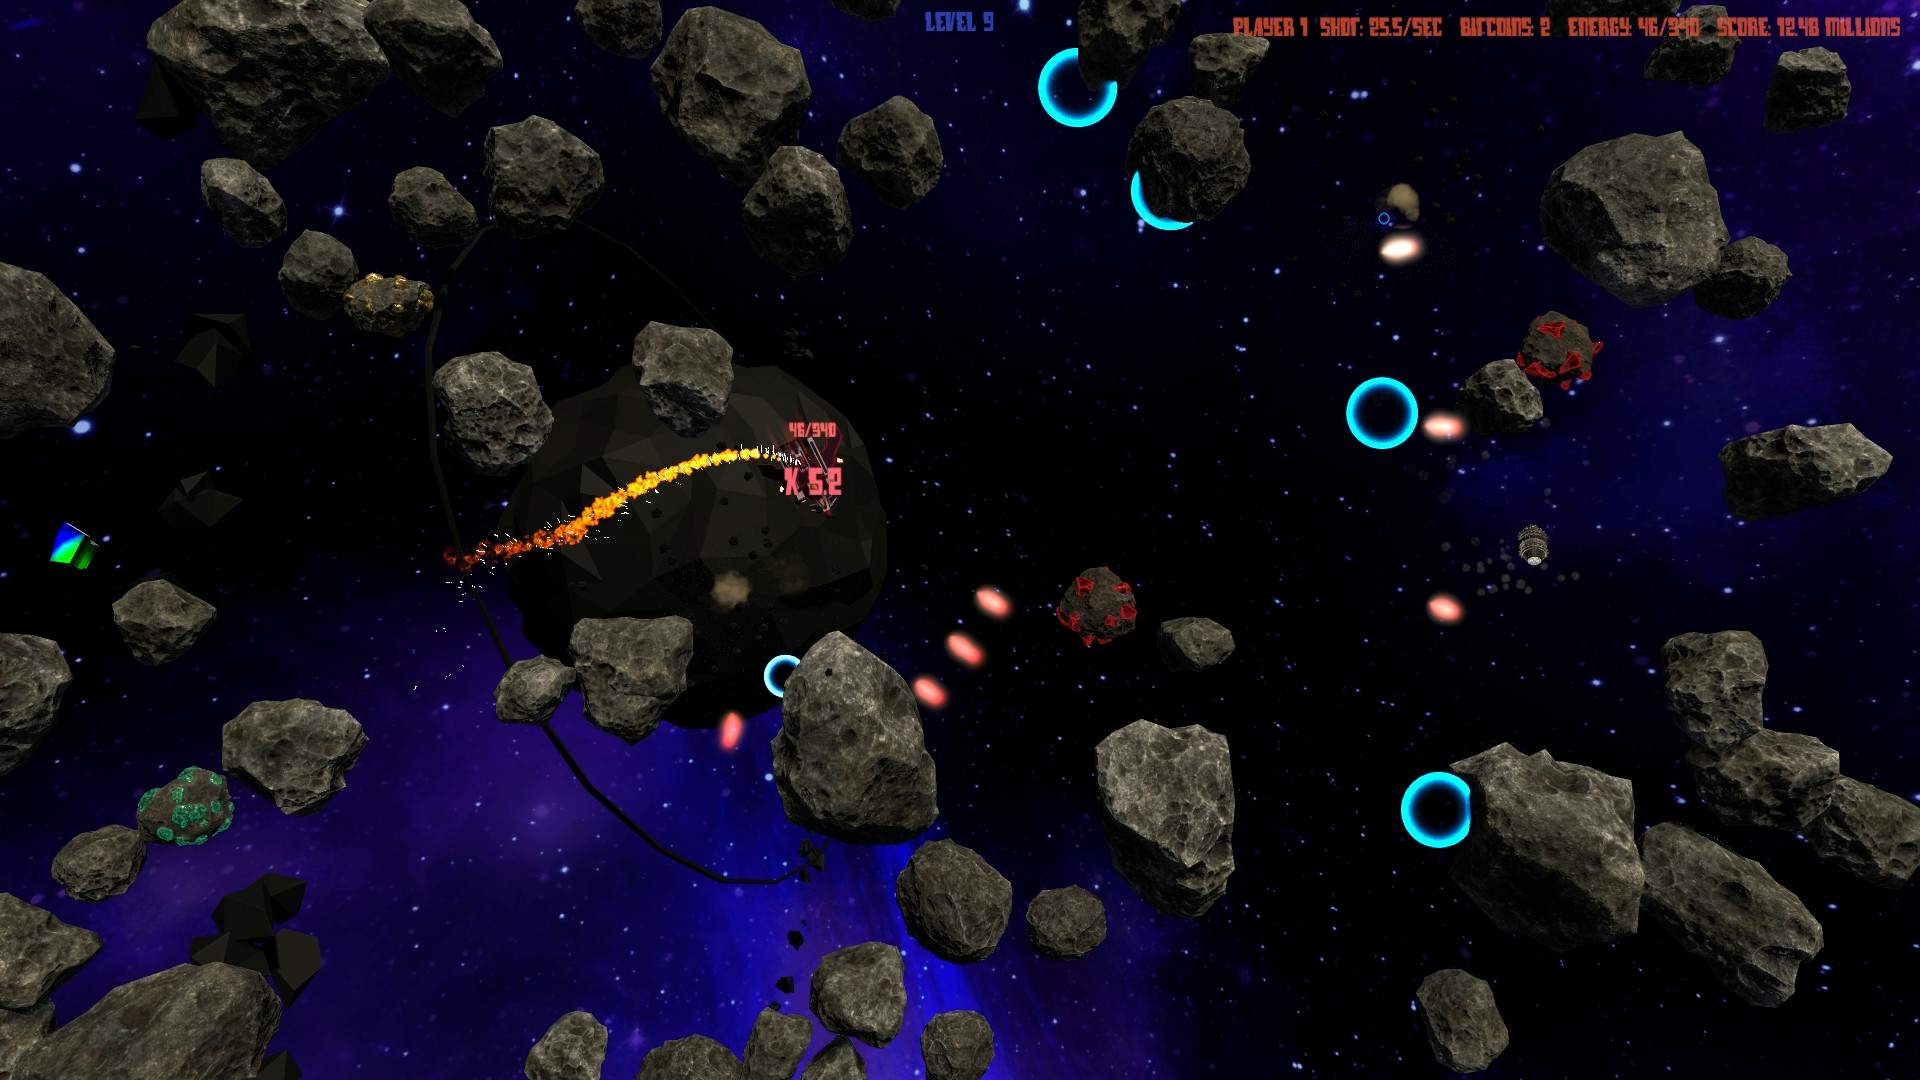 Play Asteroids 44 for free